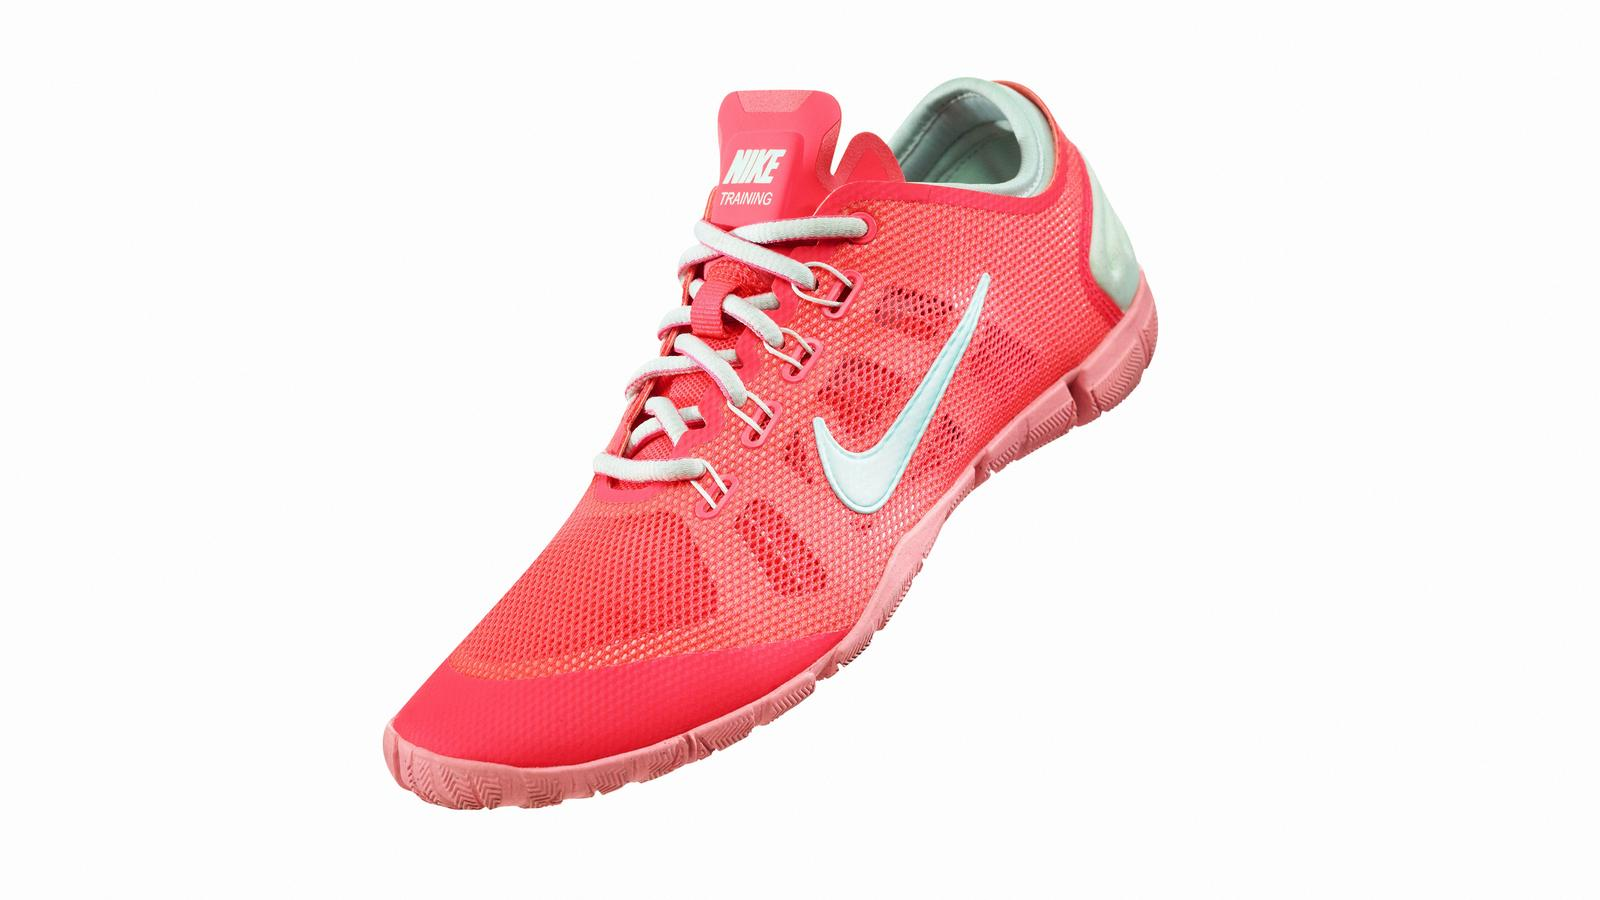 new arrivals 14869 61201 With high intensity workouts more popular than ever, the all-new Nike Free  Bionic will help women power through the toughest of workouts while looking  as ...